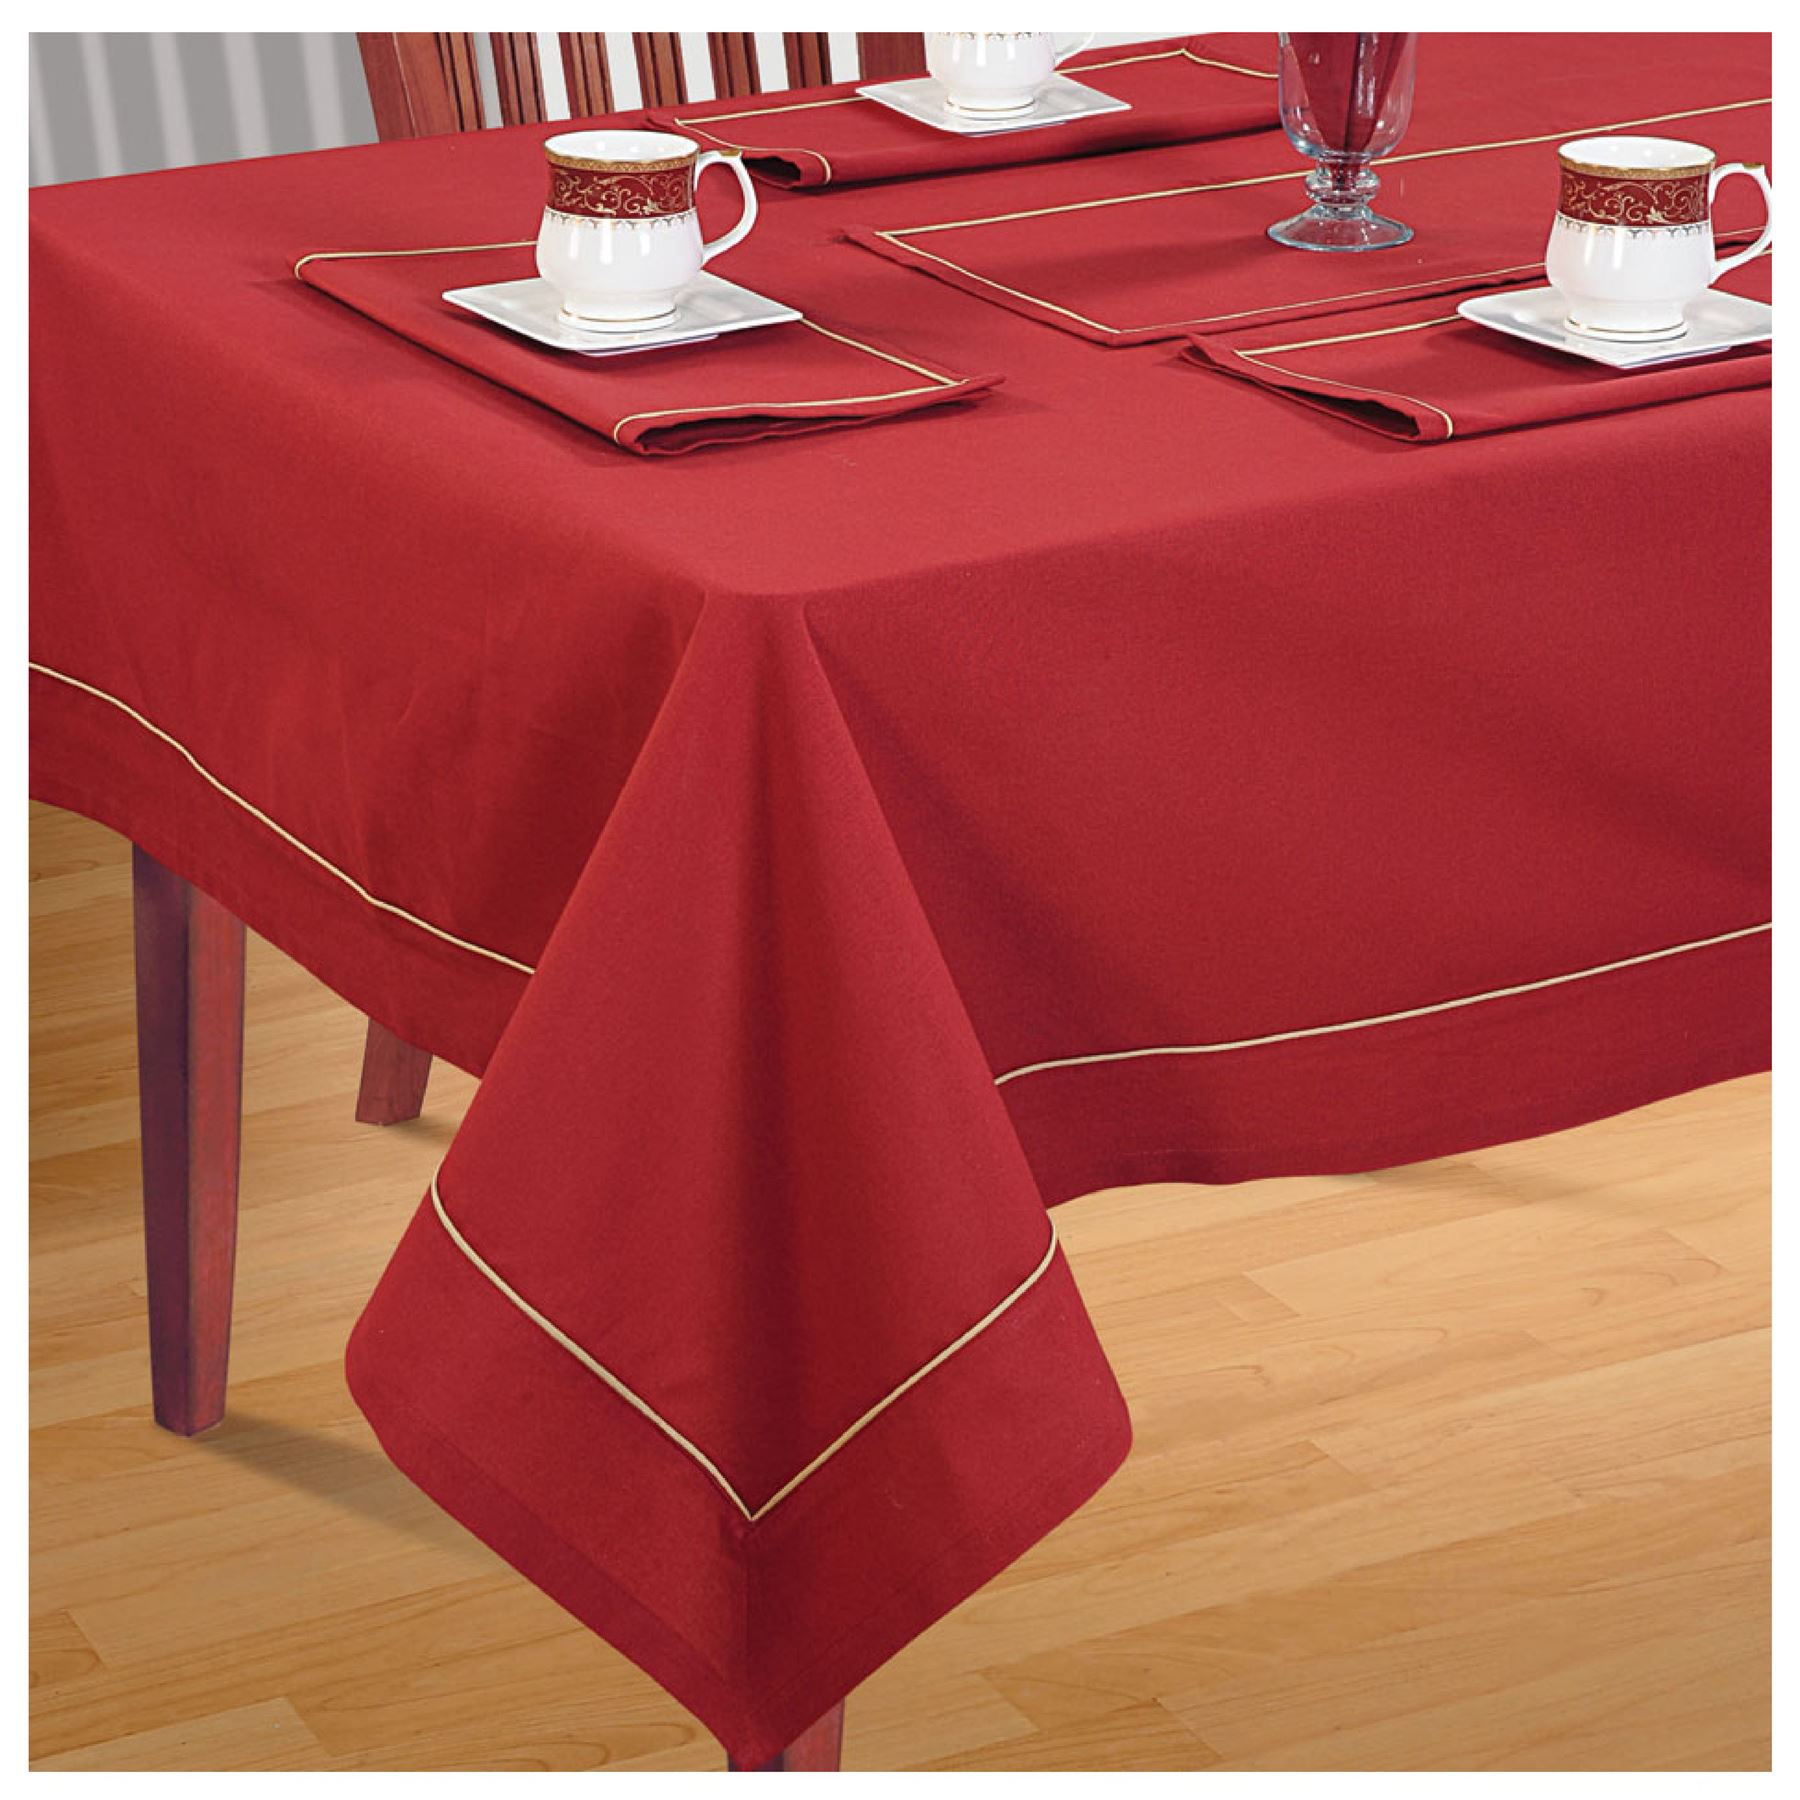 Dining Room Table Linens: 4 Seater Dinner Party Table Linen Kitchen Dining